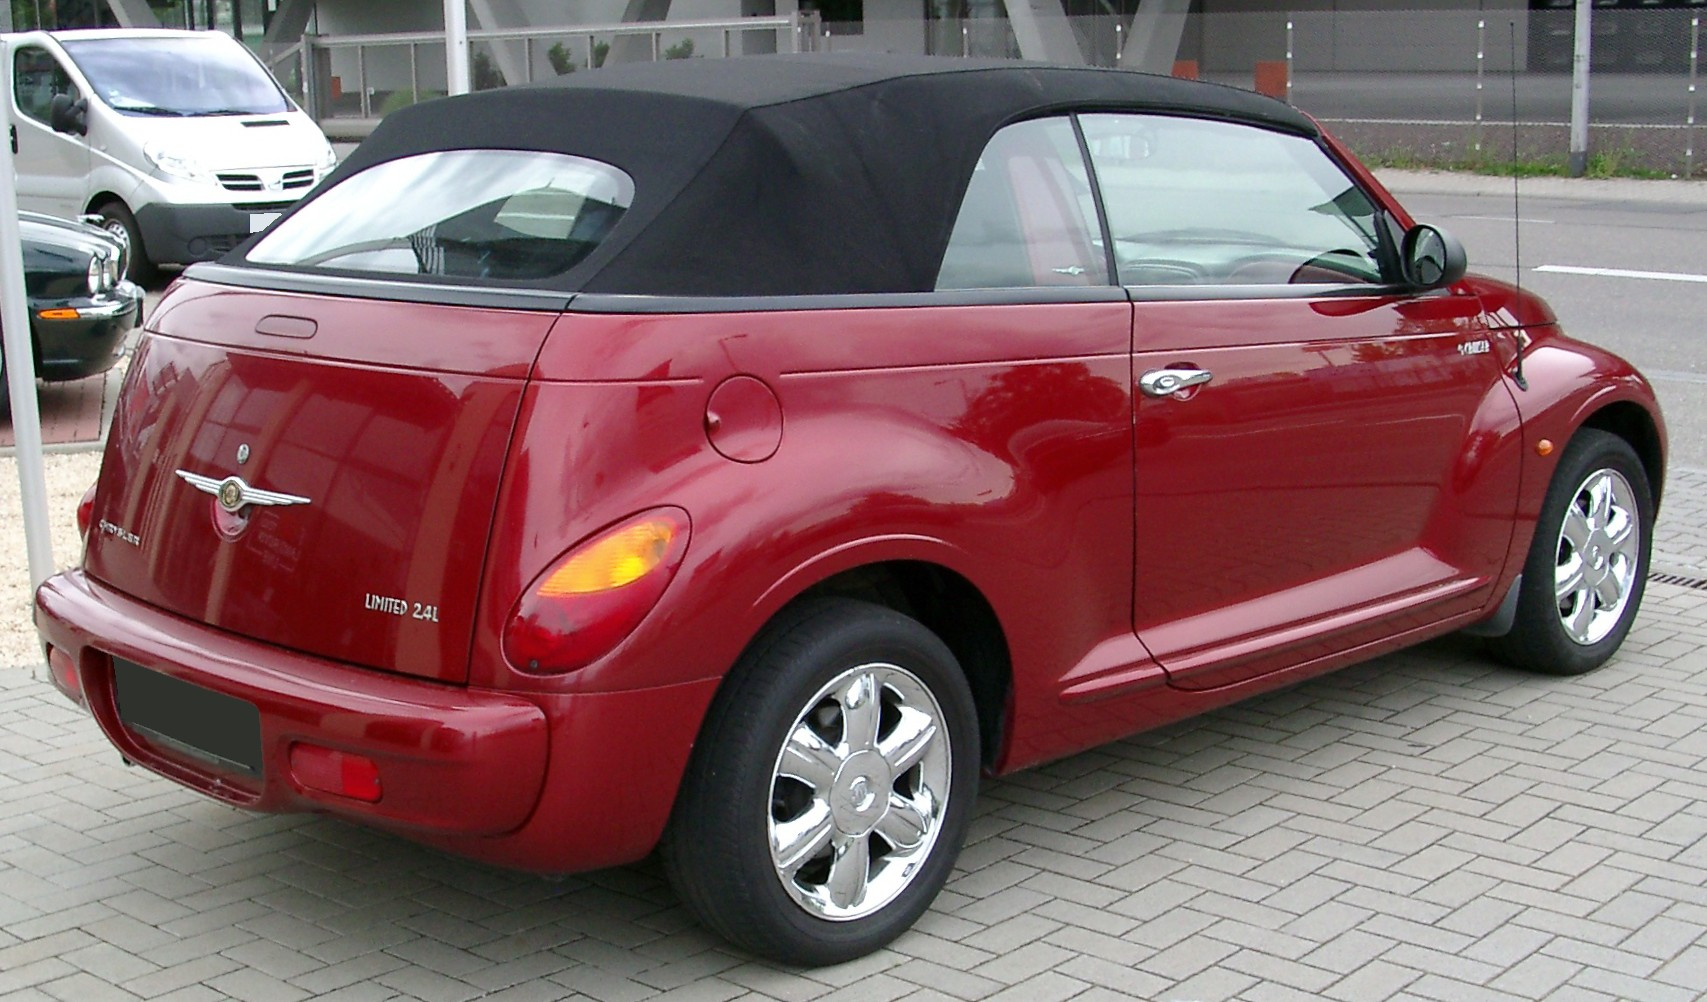 chrysler pt cruiser cabrio technical details history photos on better parts ltd. Black Bedroom Furniture Sets. Home Design Ideas